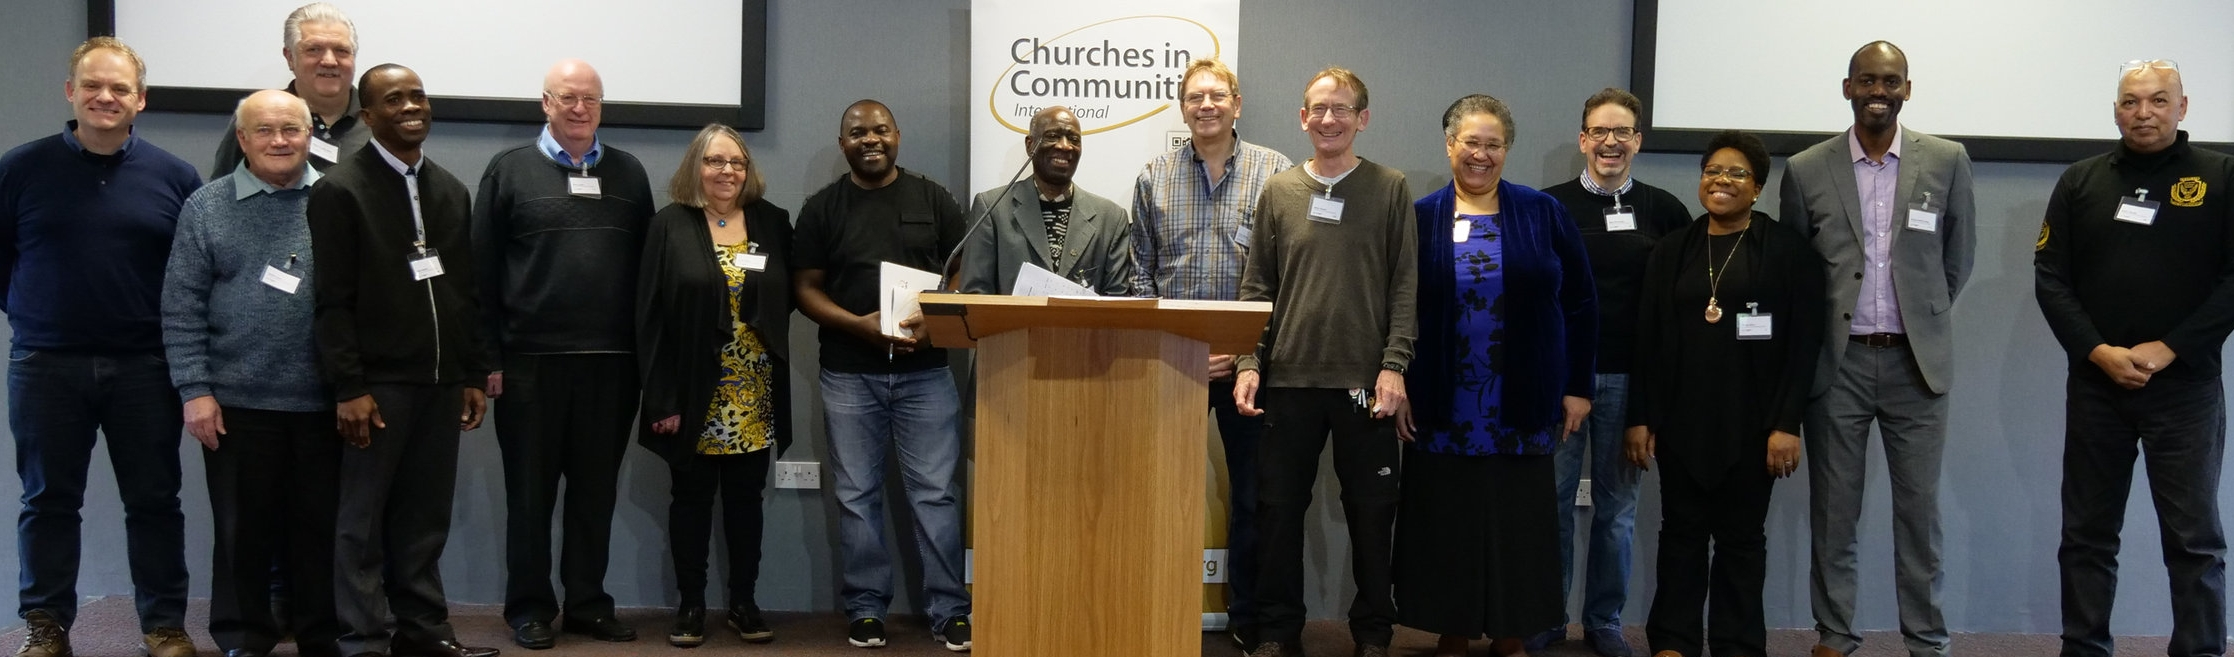 Some members of the CiC Council at the Annual Residential